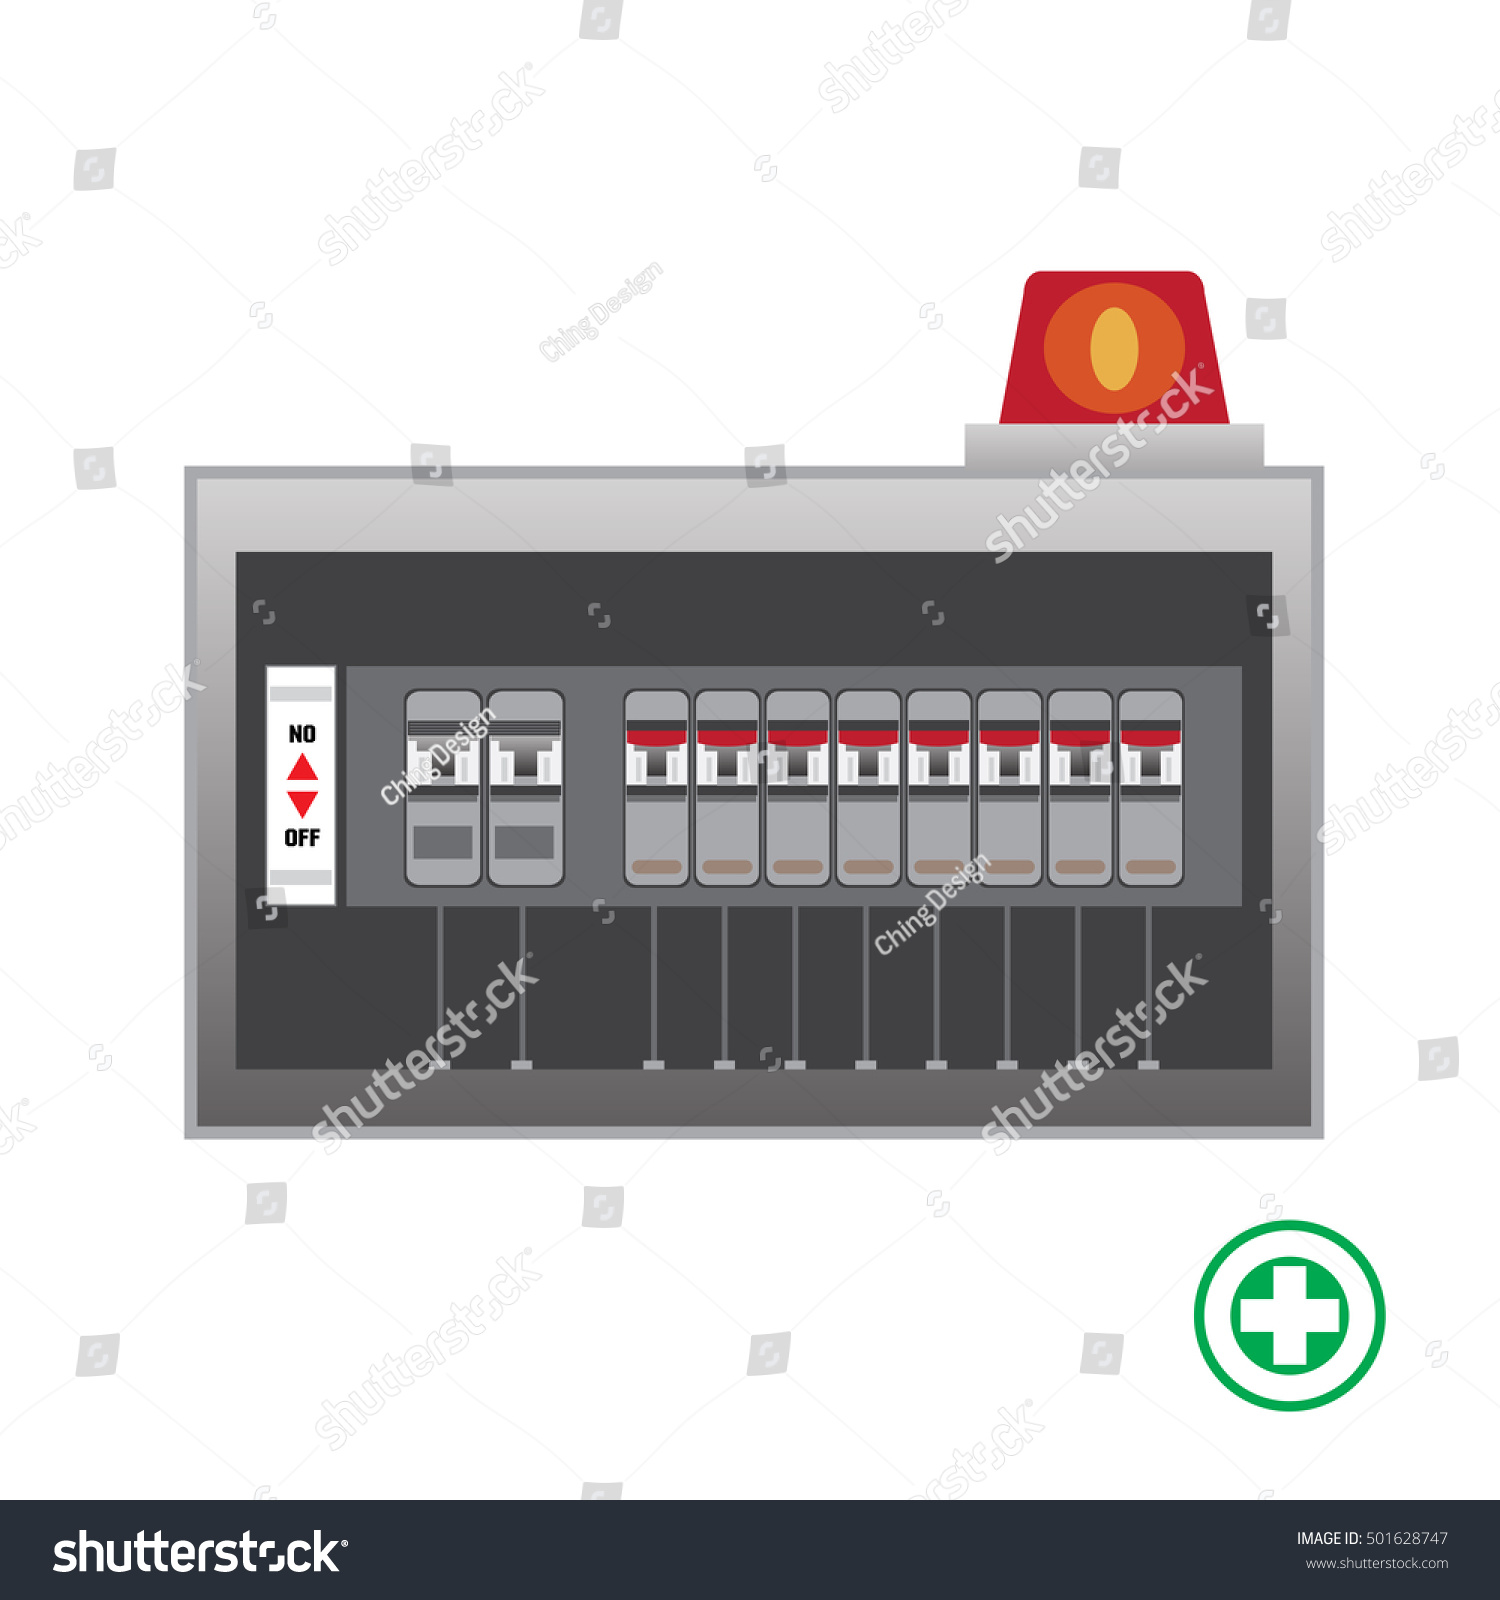 Electrical Panel Switch On Offbreakers Vector Stock Photo (Photo ...